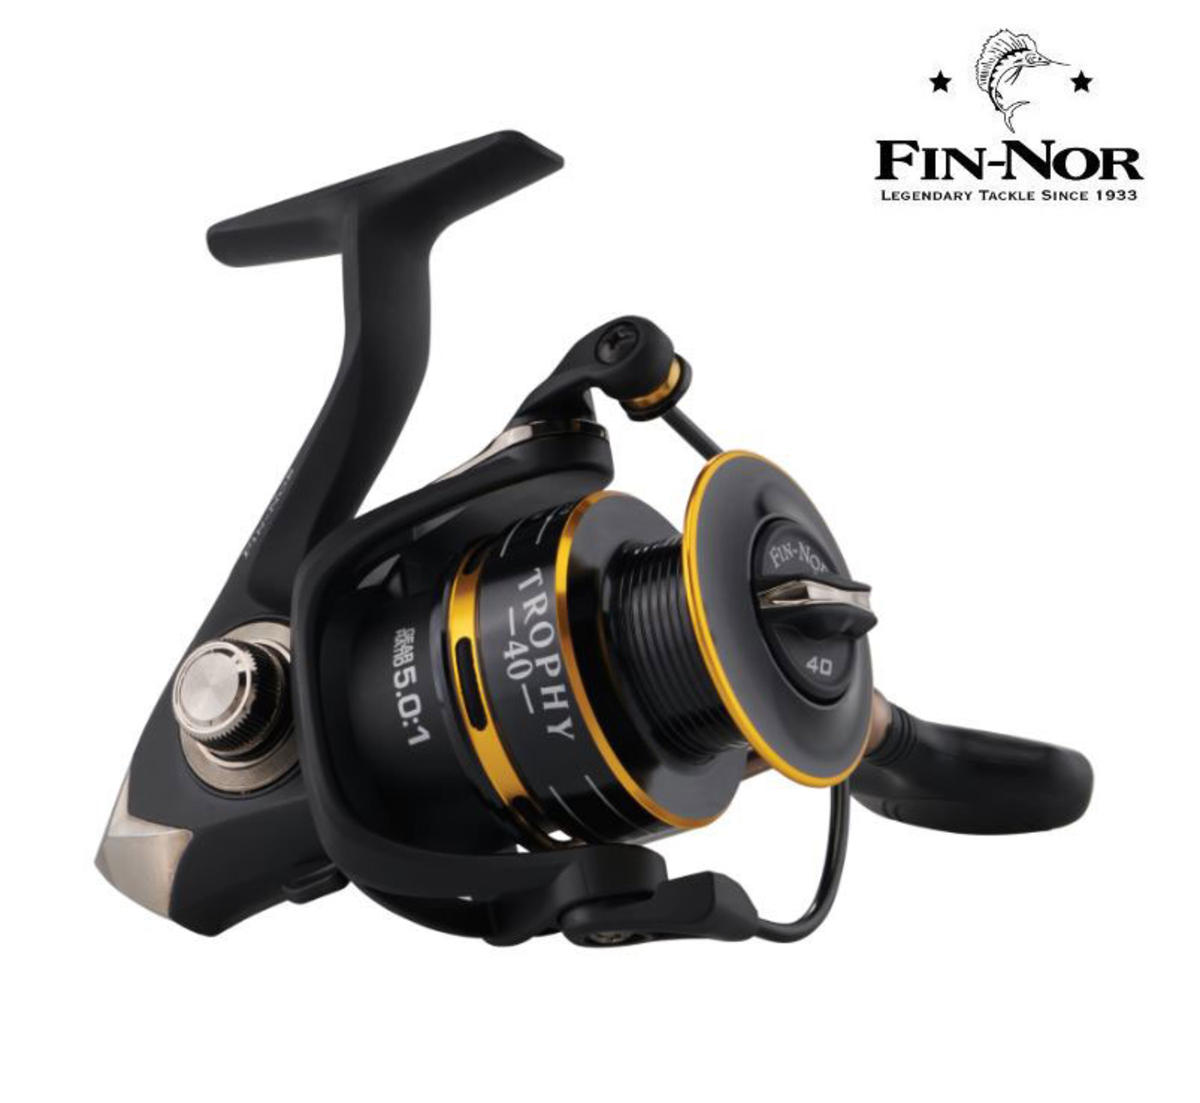 New Fin-Nor Trophy Fixed Spool Spinning Fishing Reel - All Sizes